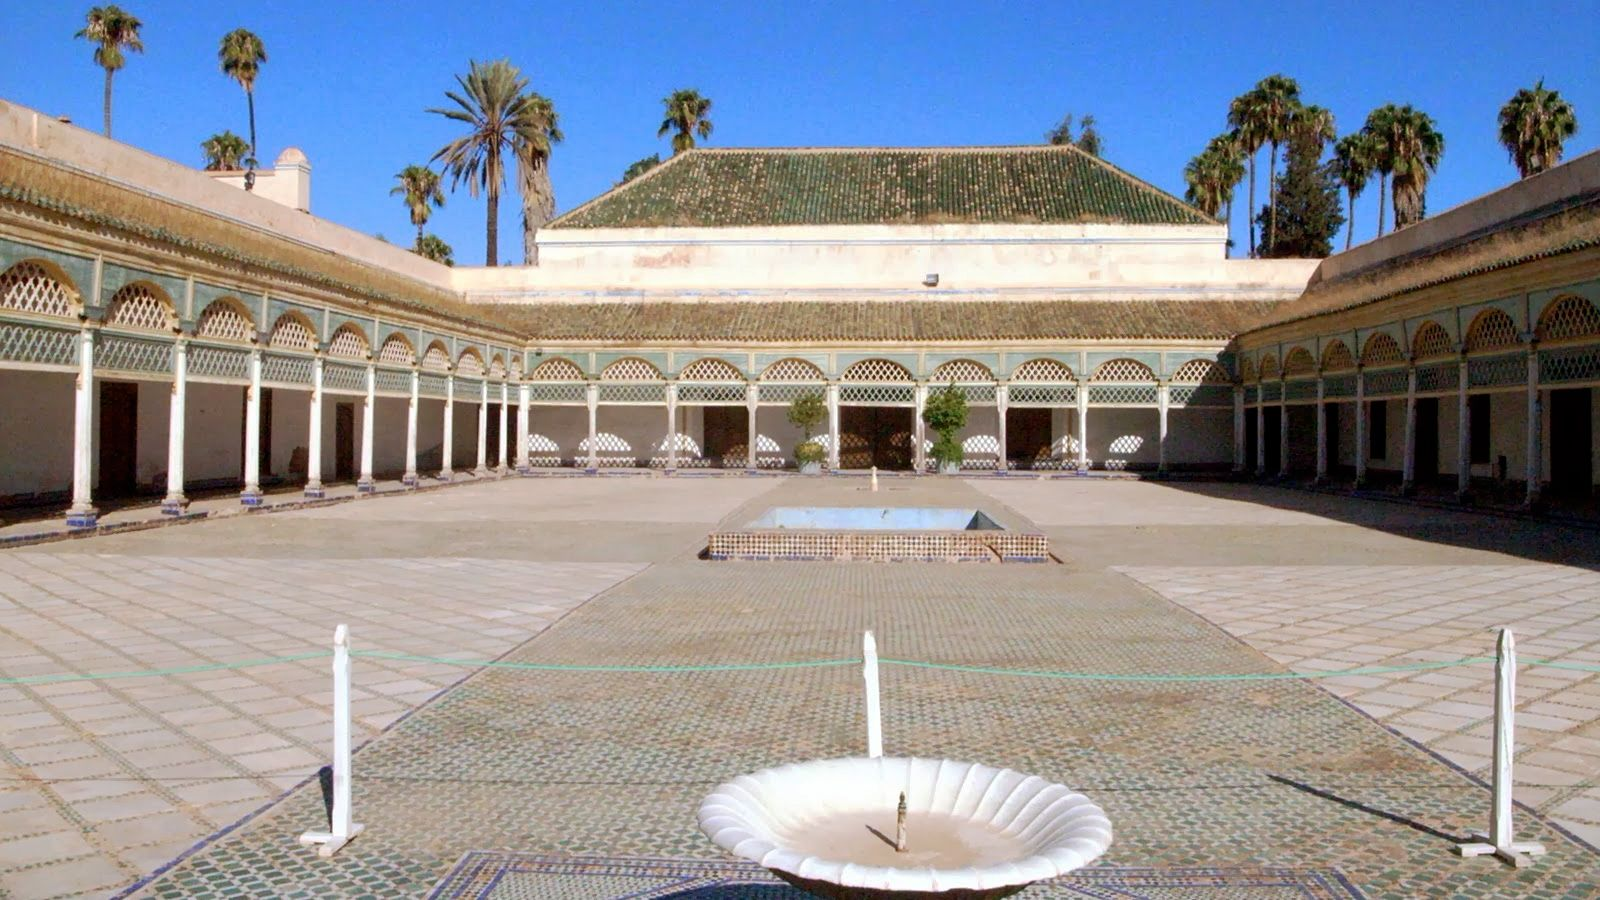 Bahia Palace courtyard and fountains in Marrakech